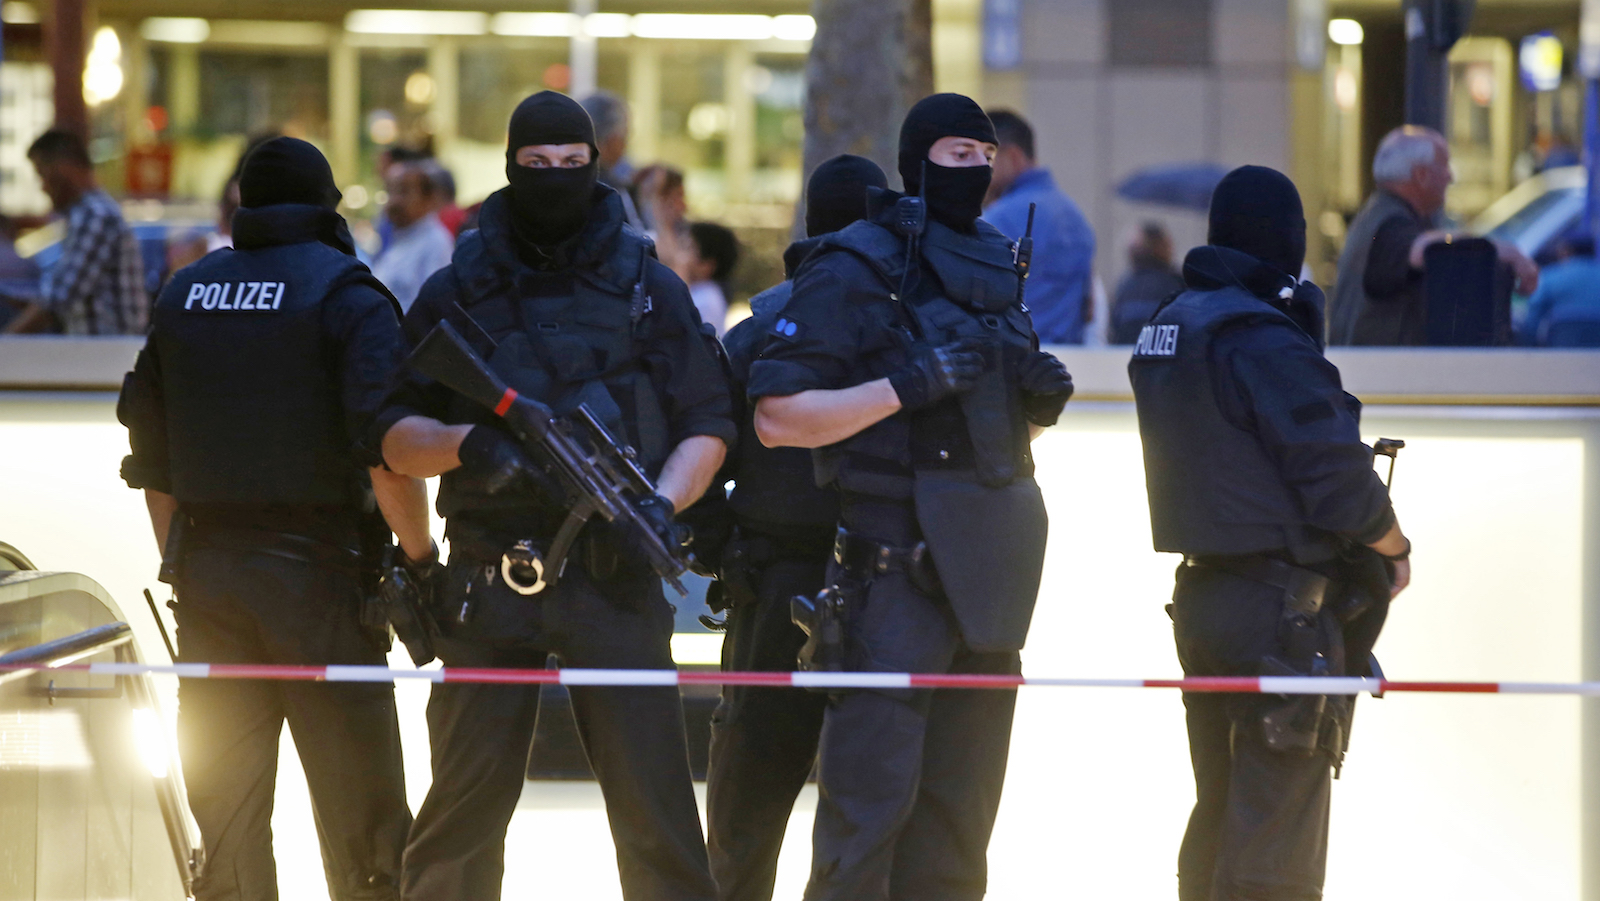 Special forces police officers stand guard at entrance of main train station following shooting rampage at shopping mall in Munich